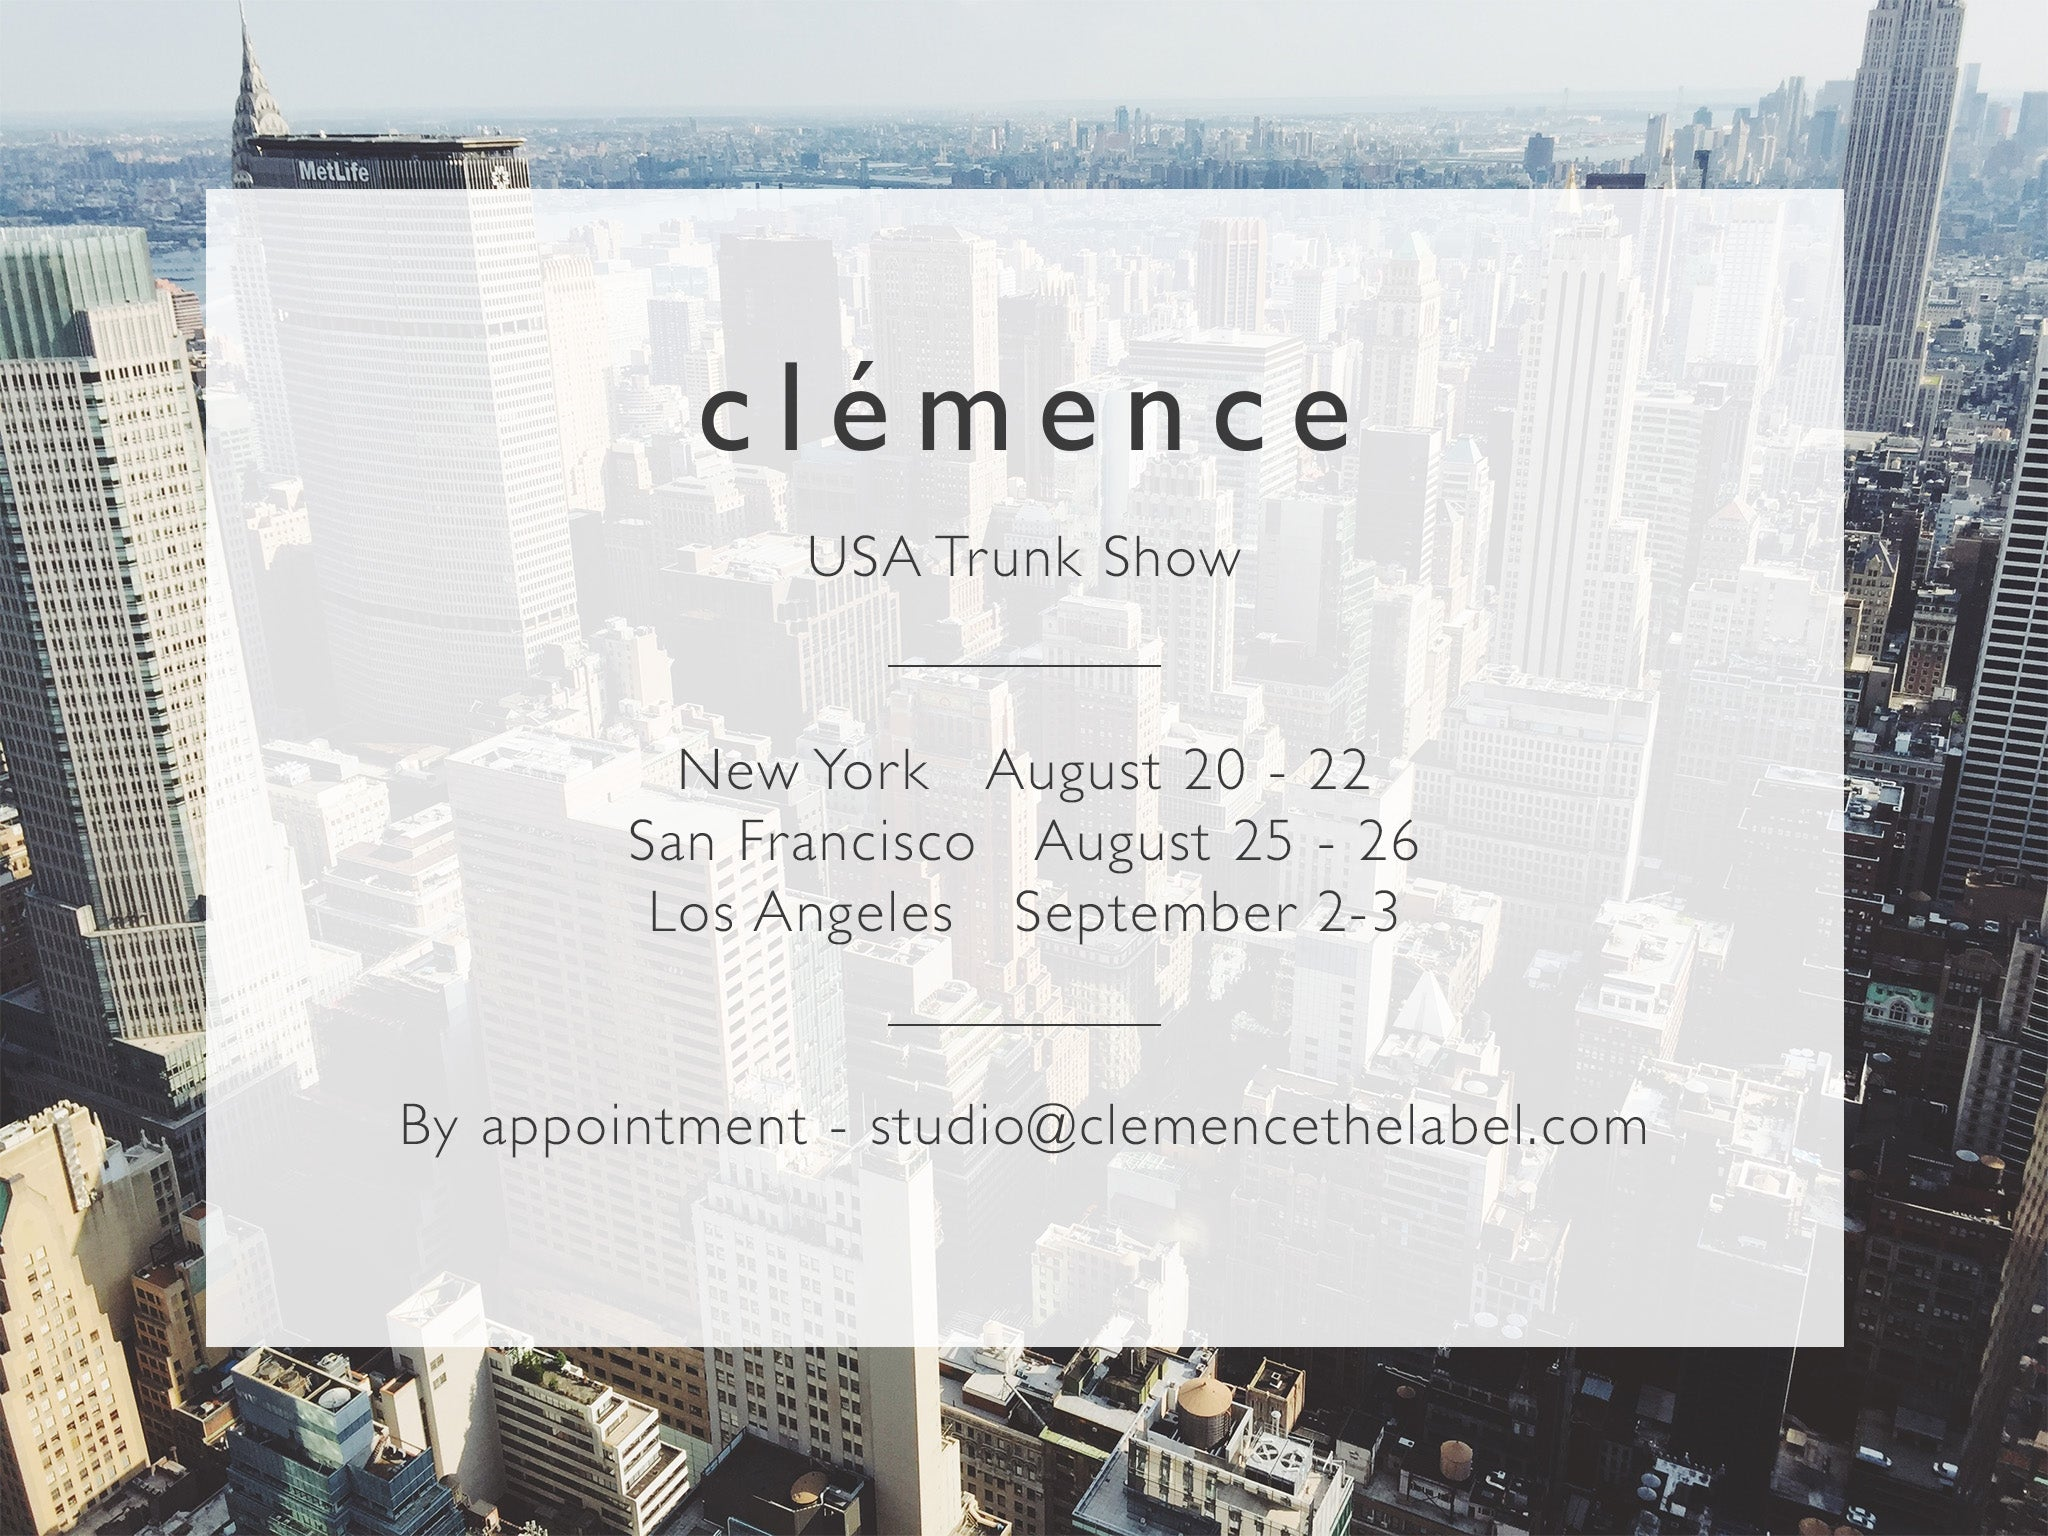 clemence USA Trunk Show